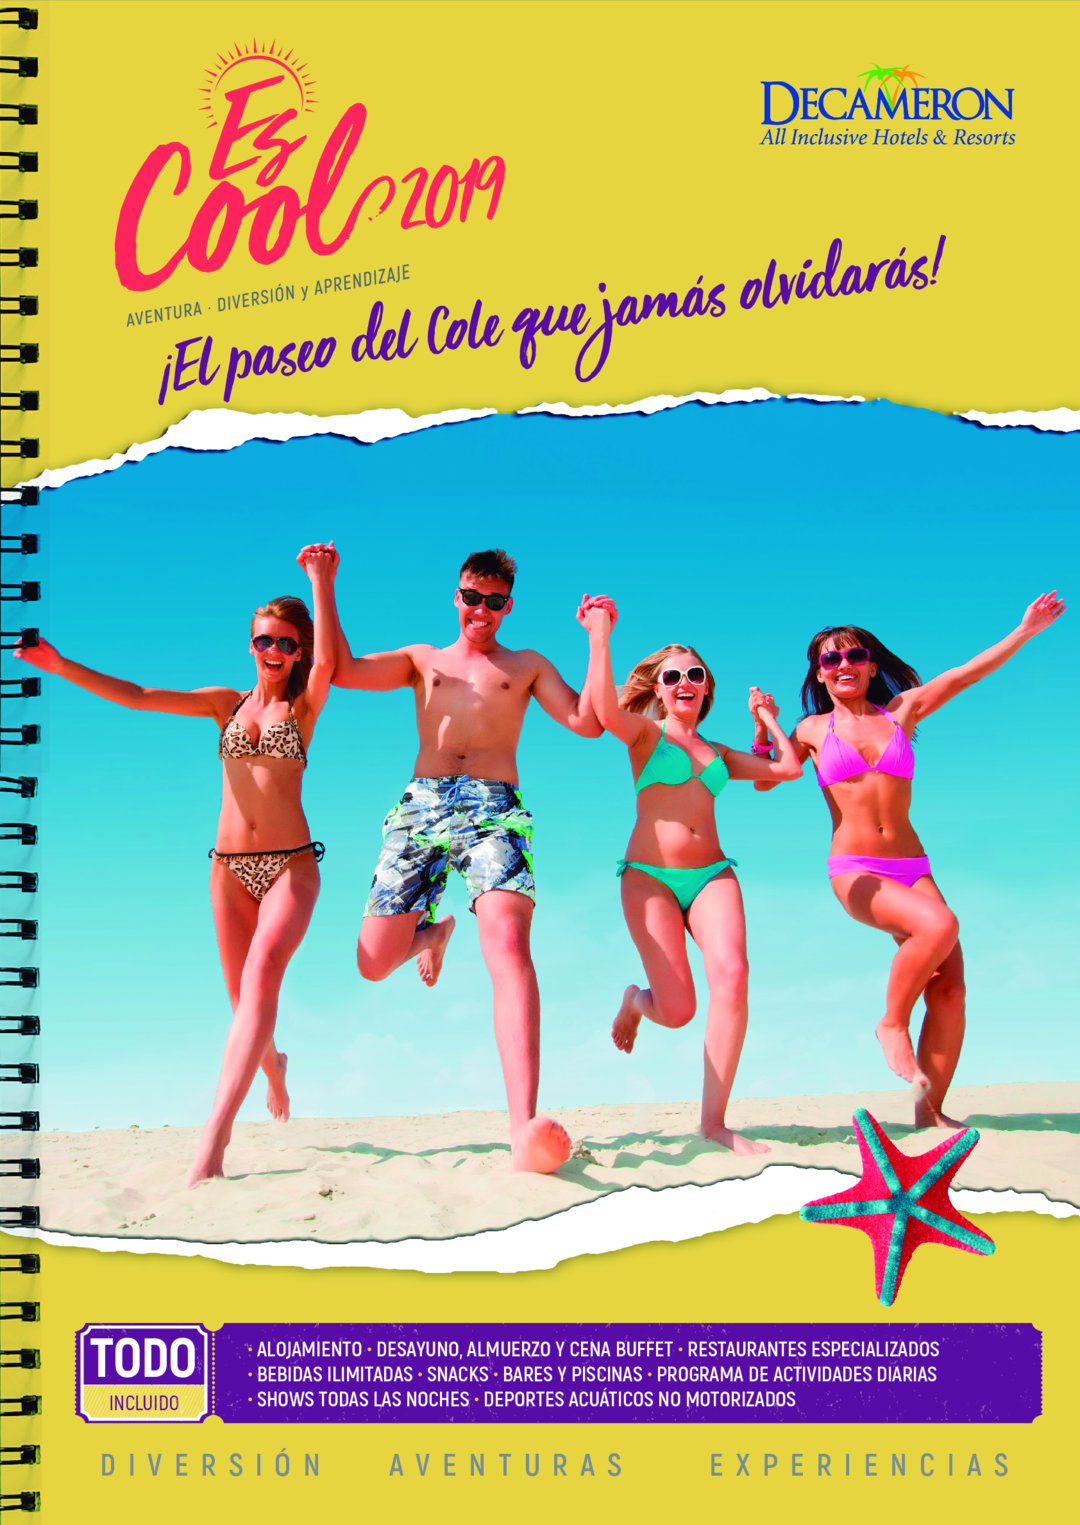 story from: Decameron Es Cool 2020